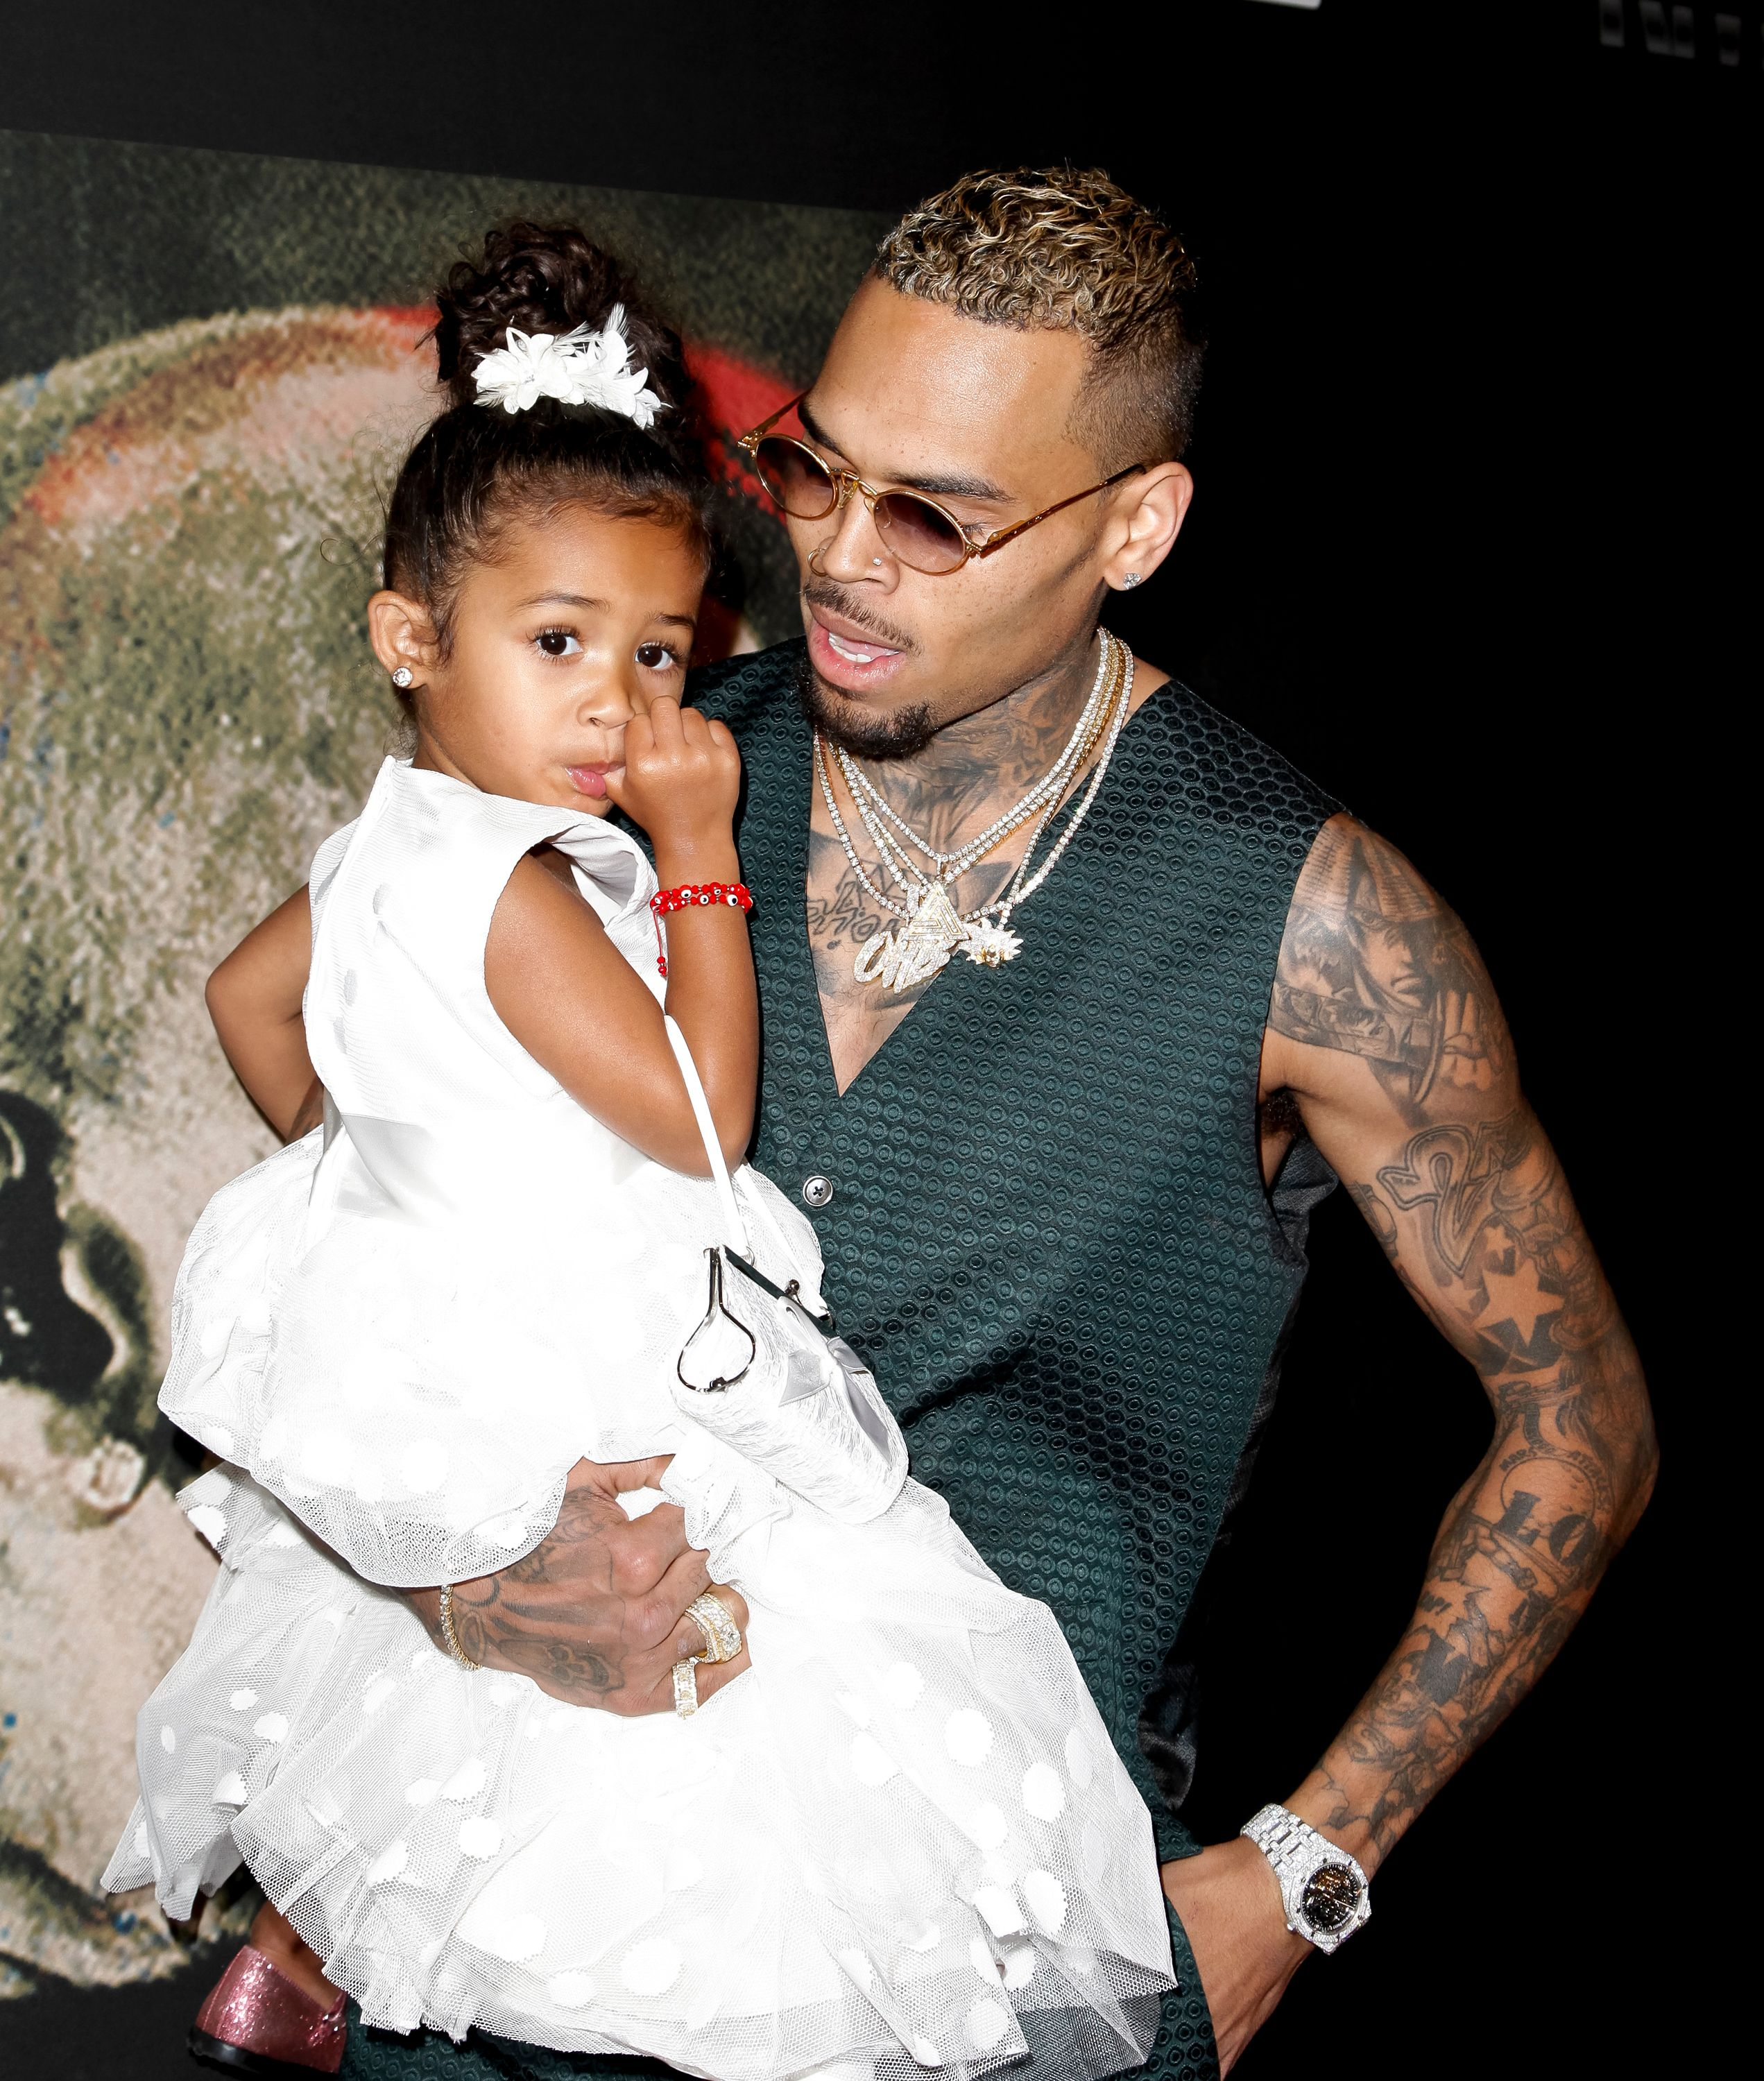 Royalty Brown and Chris Brown attend the premiere of Fathom Events 'Chris Brown: Welcome To My Life' at Regal LA Live Stadium 14 on June 6, 2017 in Los Angeles, California. | Source: Getty Images